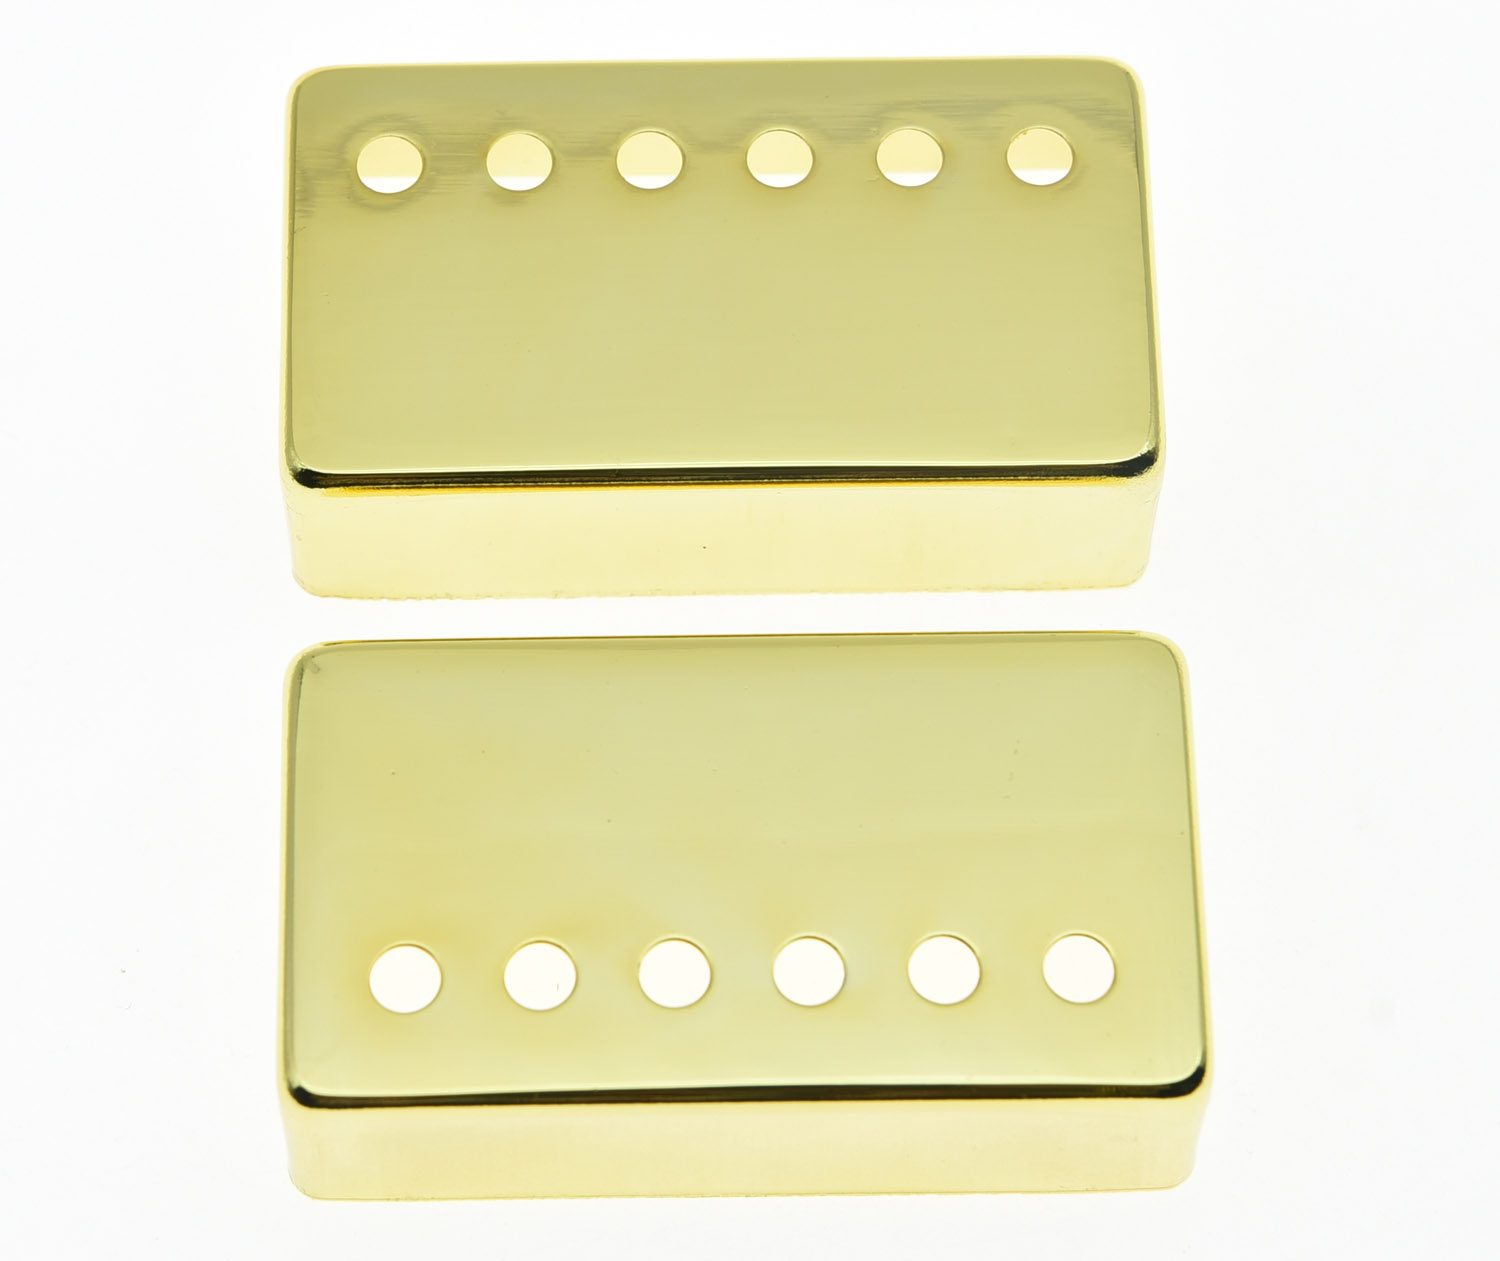 KAISH 2x Gold LP Humbucker Guitar Pickup Cover 50and 52 Pole Spacing Covers for Les Paul 2 holes aluminum alloy guitar truss rod cover bell shape fits for epiphone les paul lp for electric guitar replacement part new